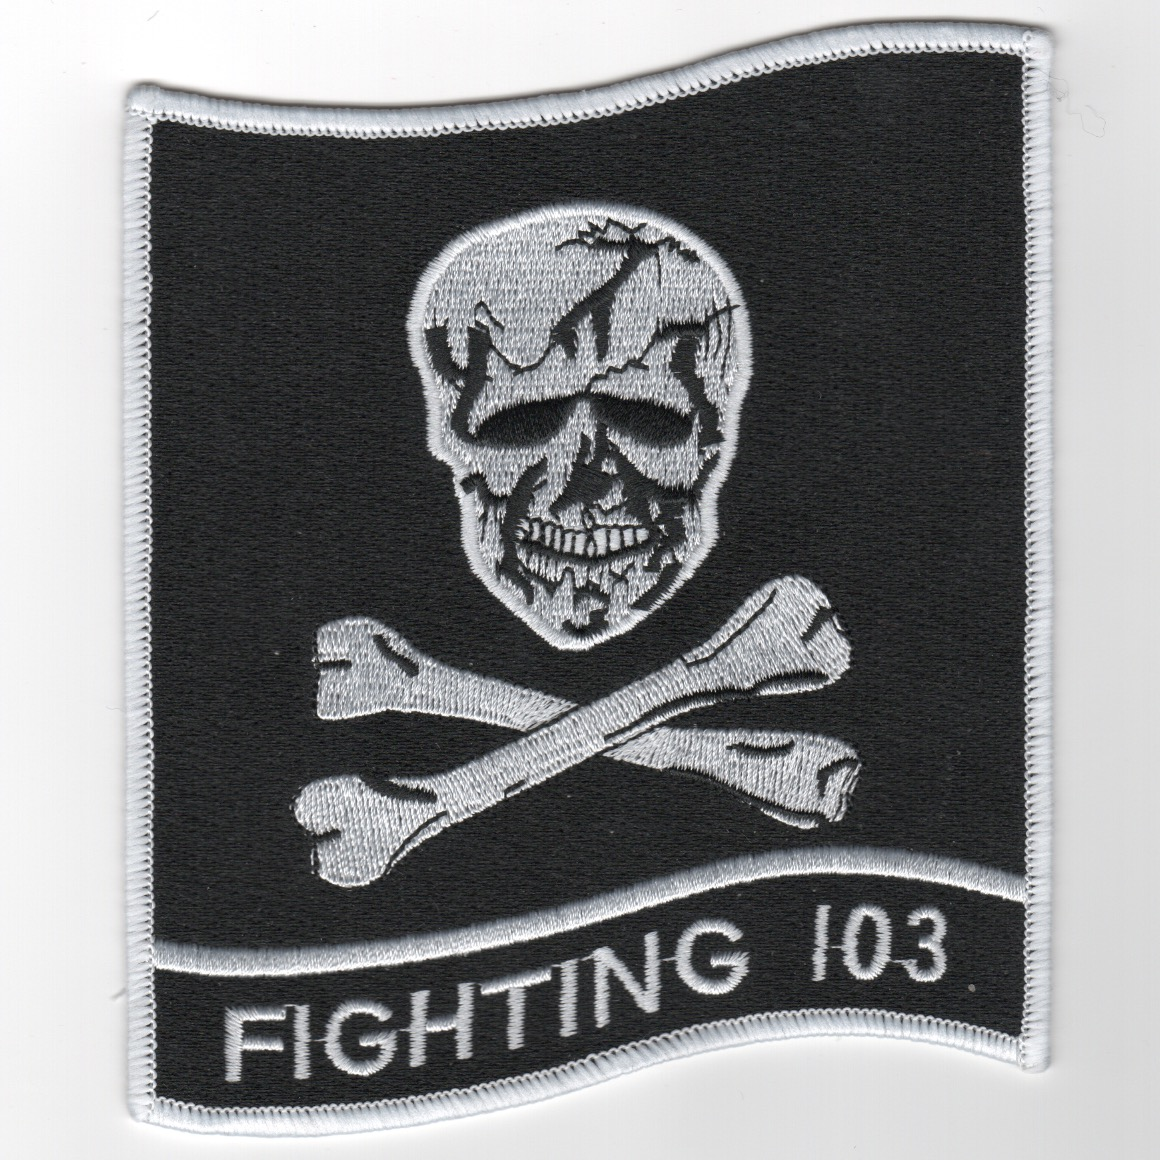 VF-103 'Backpatch' (Large/White Border)